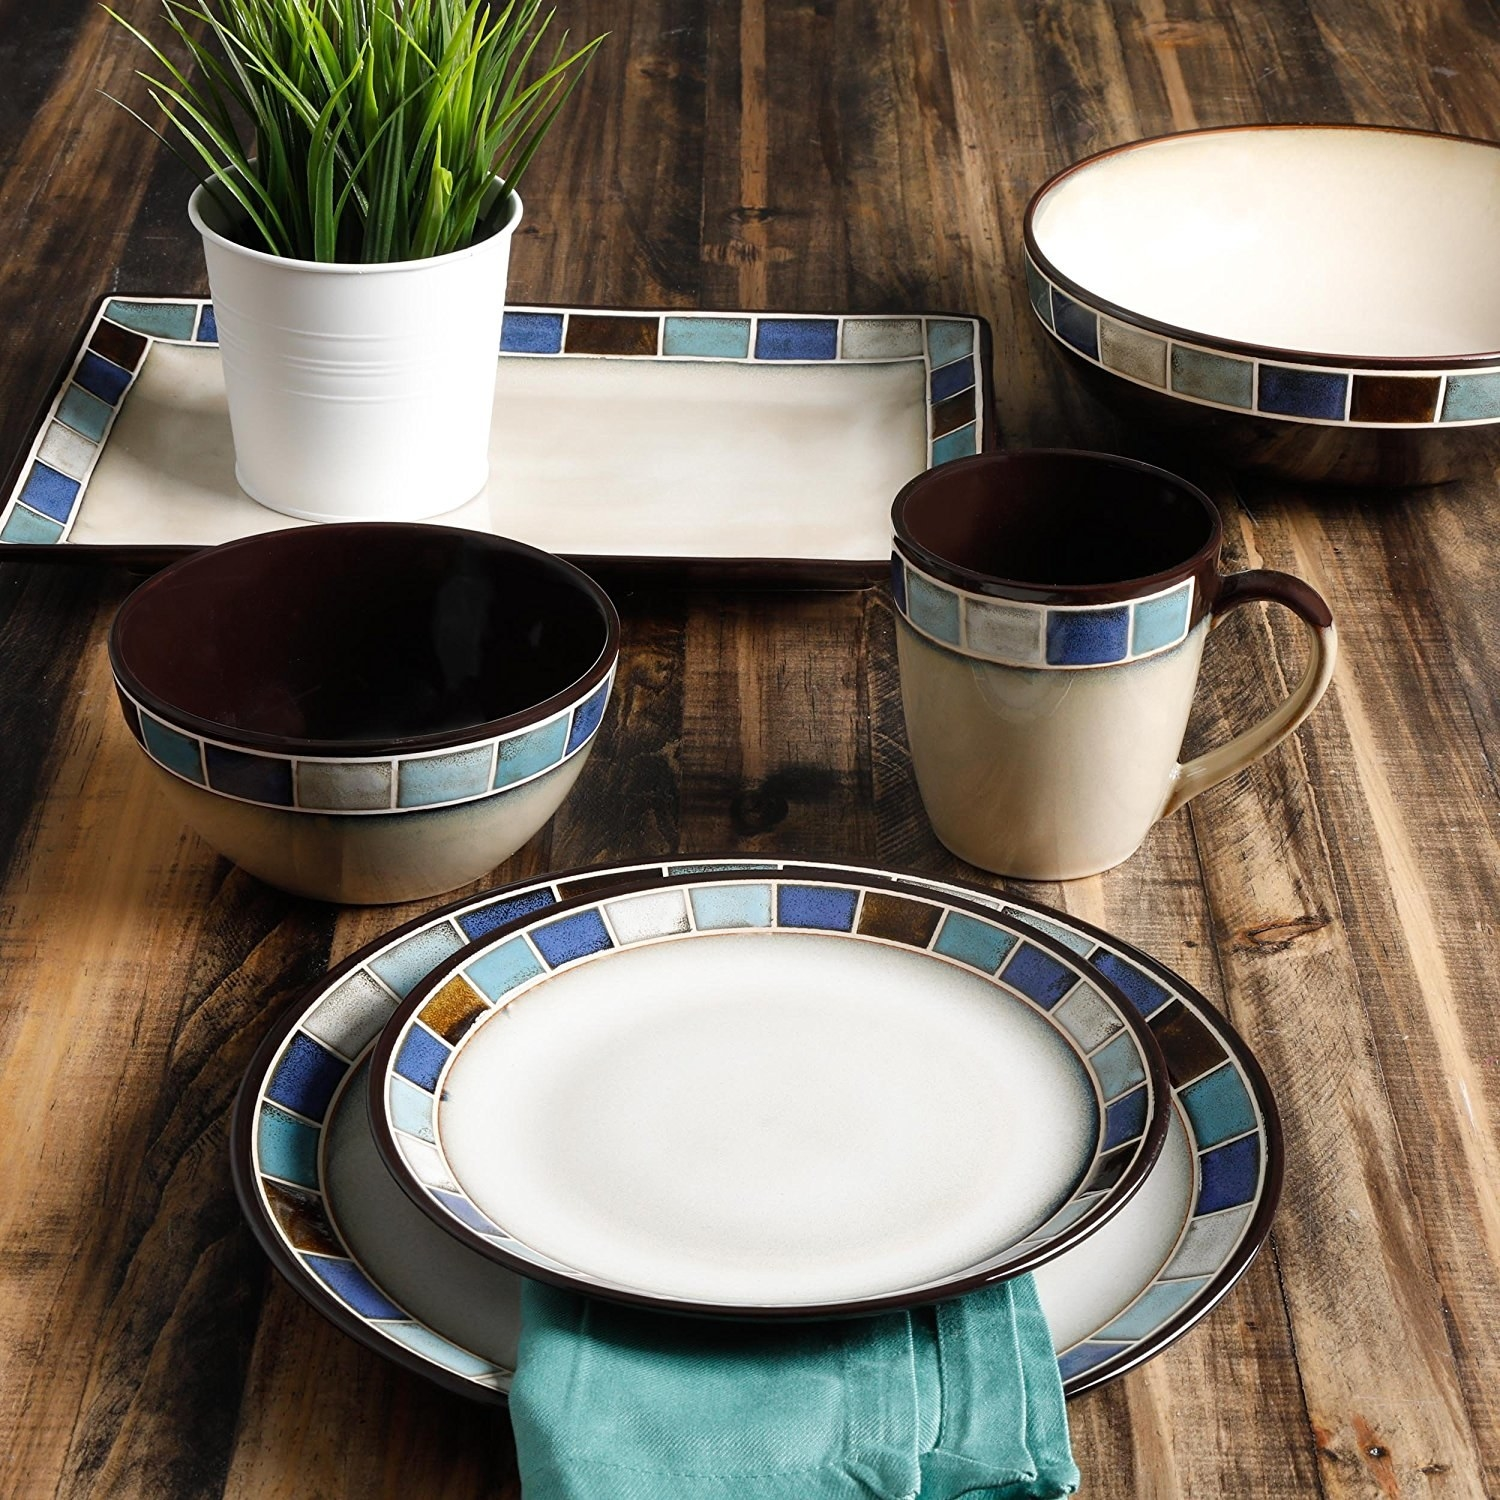 An artisanal-style pick so you can add a lilu0027 flavor in your dishware selection because weu0027re positive youu0027re already bringing the flavor in the yummy food ... & 15 Of The Best Dishware Sets You Can Get On Amazon